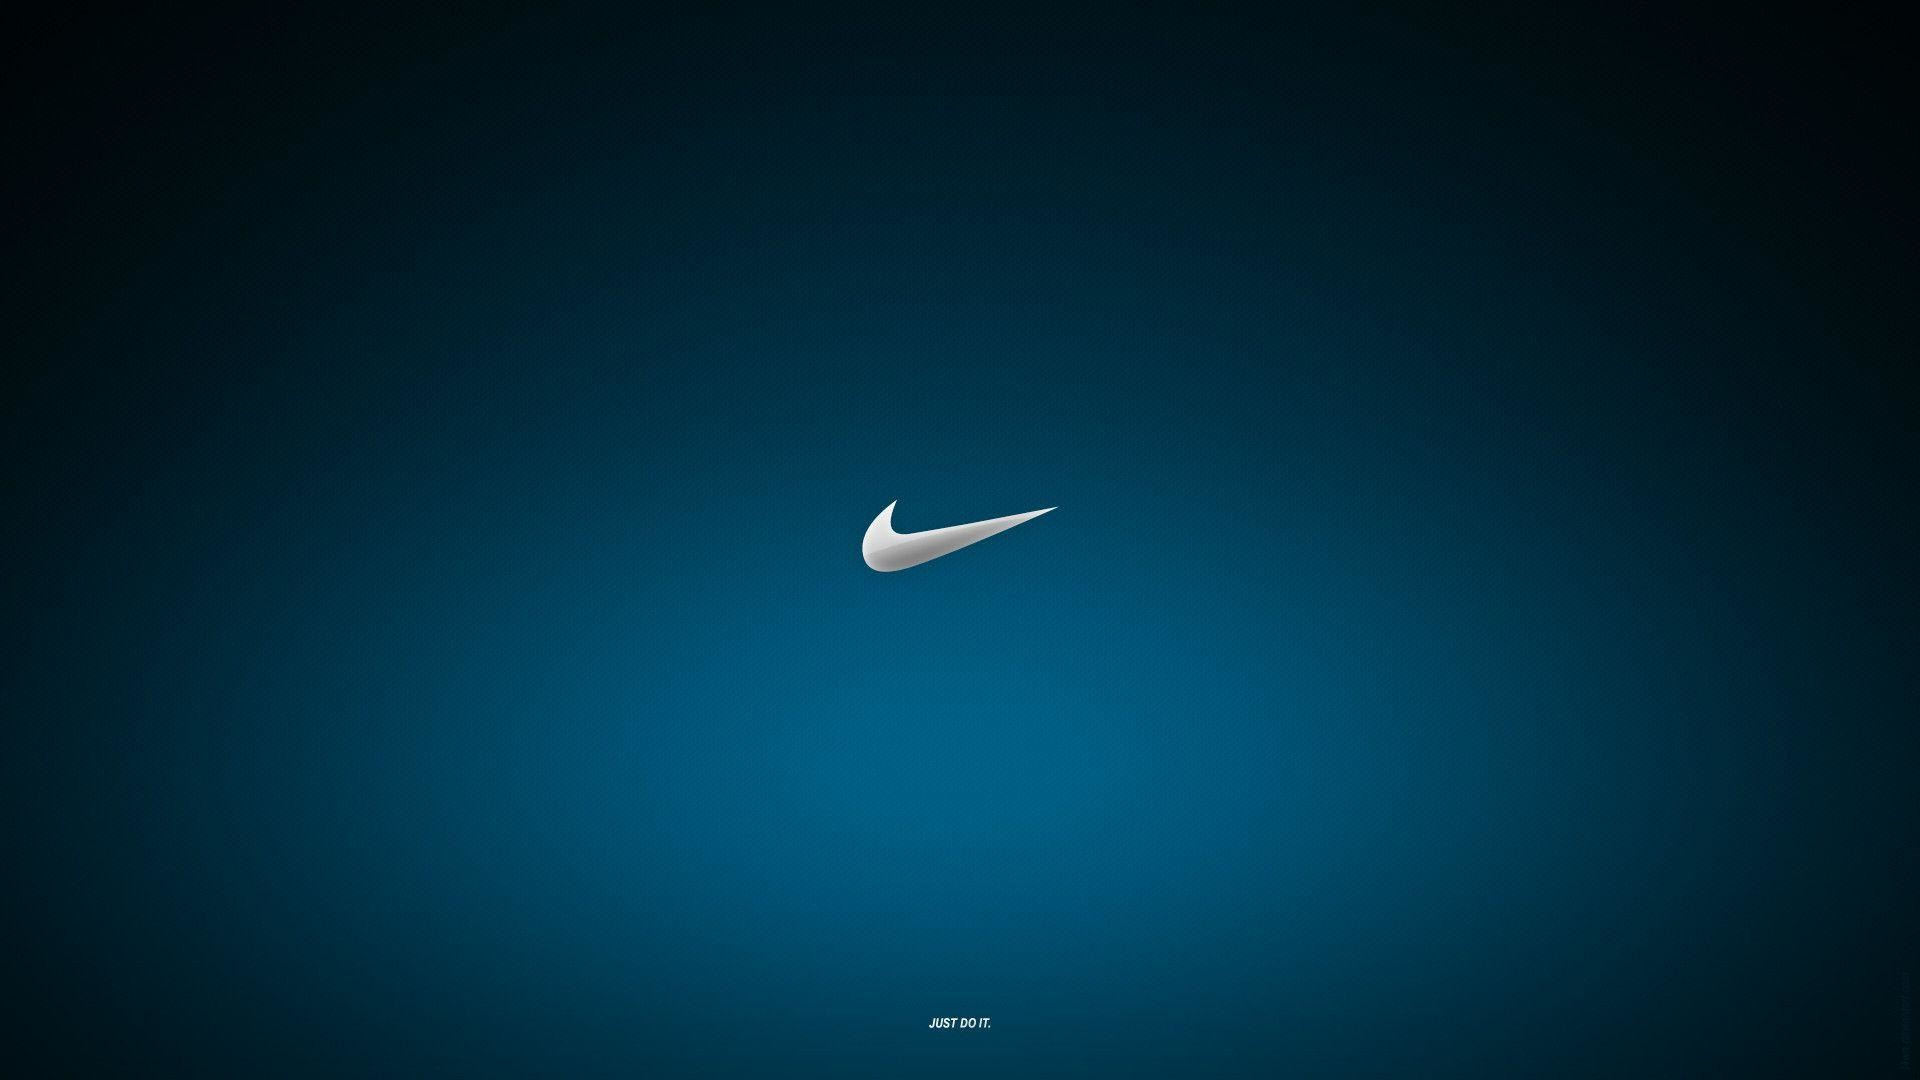 Nike Swoosh Wallpapers: Nike Swoosh Wallpapers (59+ Background Pictures